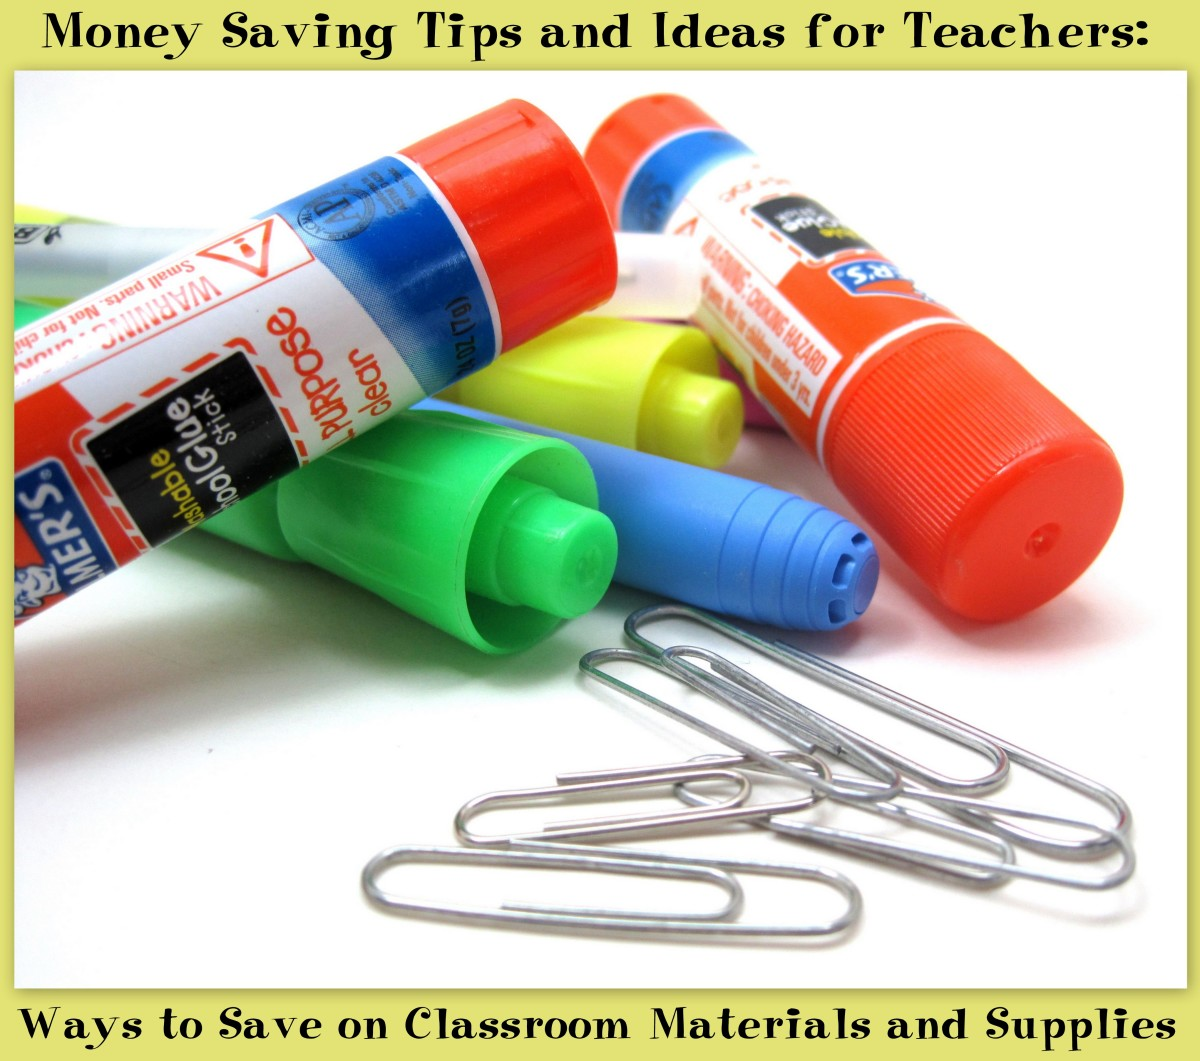 Money Saving Tips and Ideas for Teachers: Ways to Save on Classroom Materials and Supplies